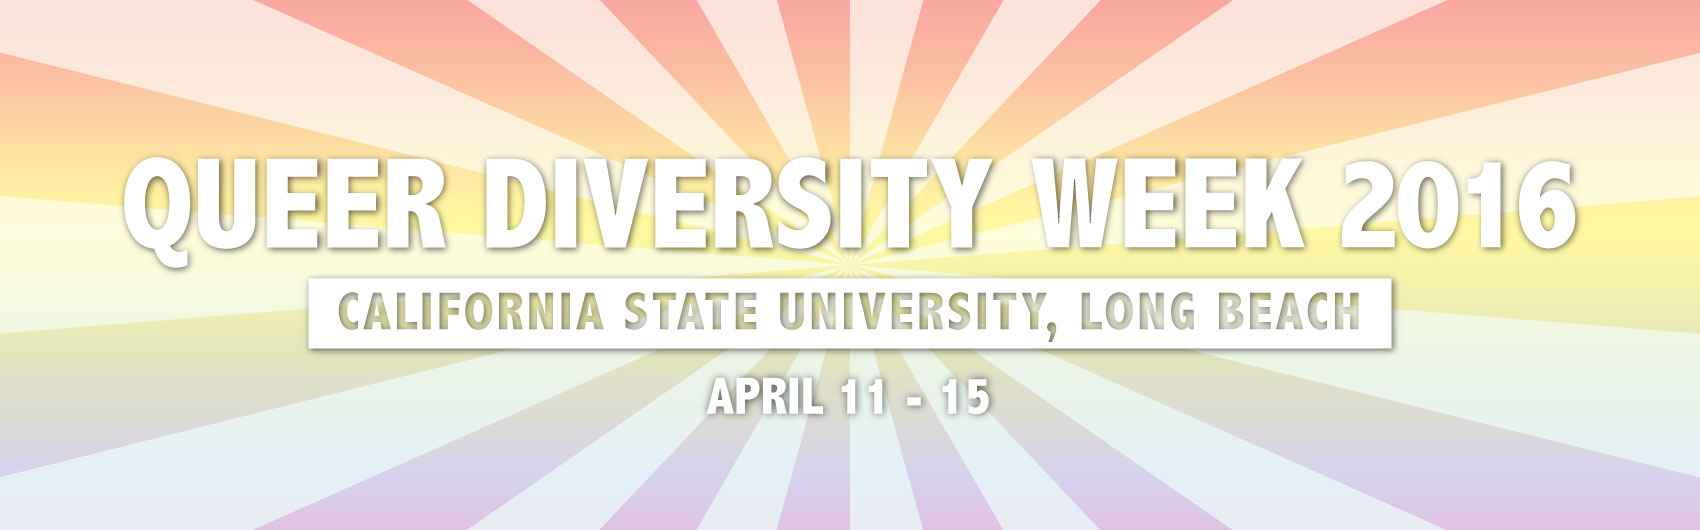 Queer Diversity Week: April 11 to 15